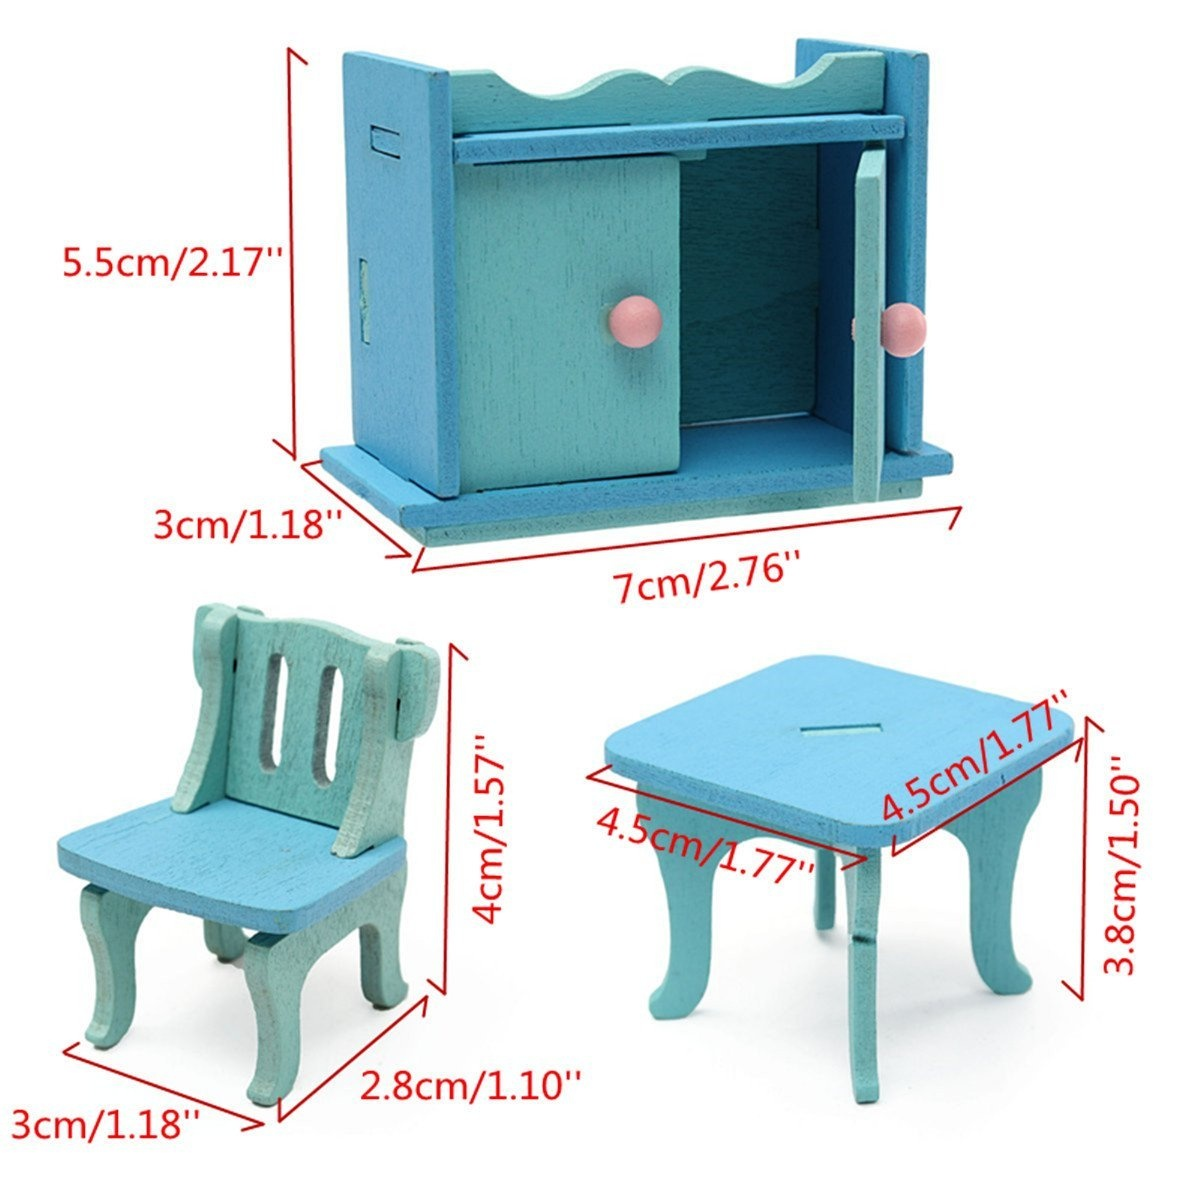 Kit Set Doll House Toys Toys: Buy Online from Fishpond.co.nz